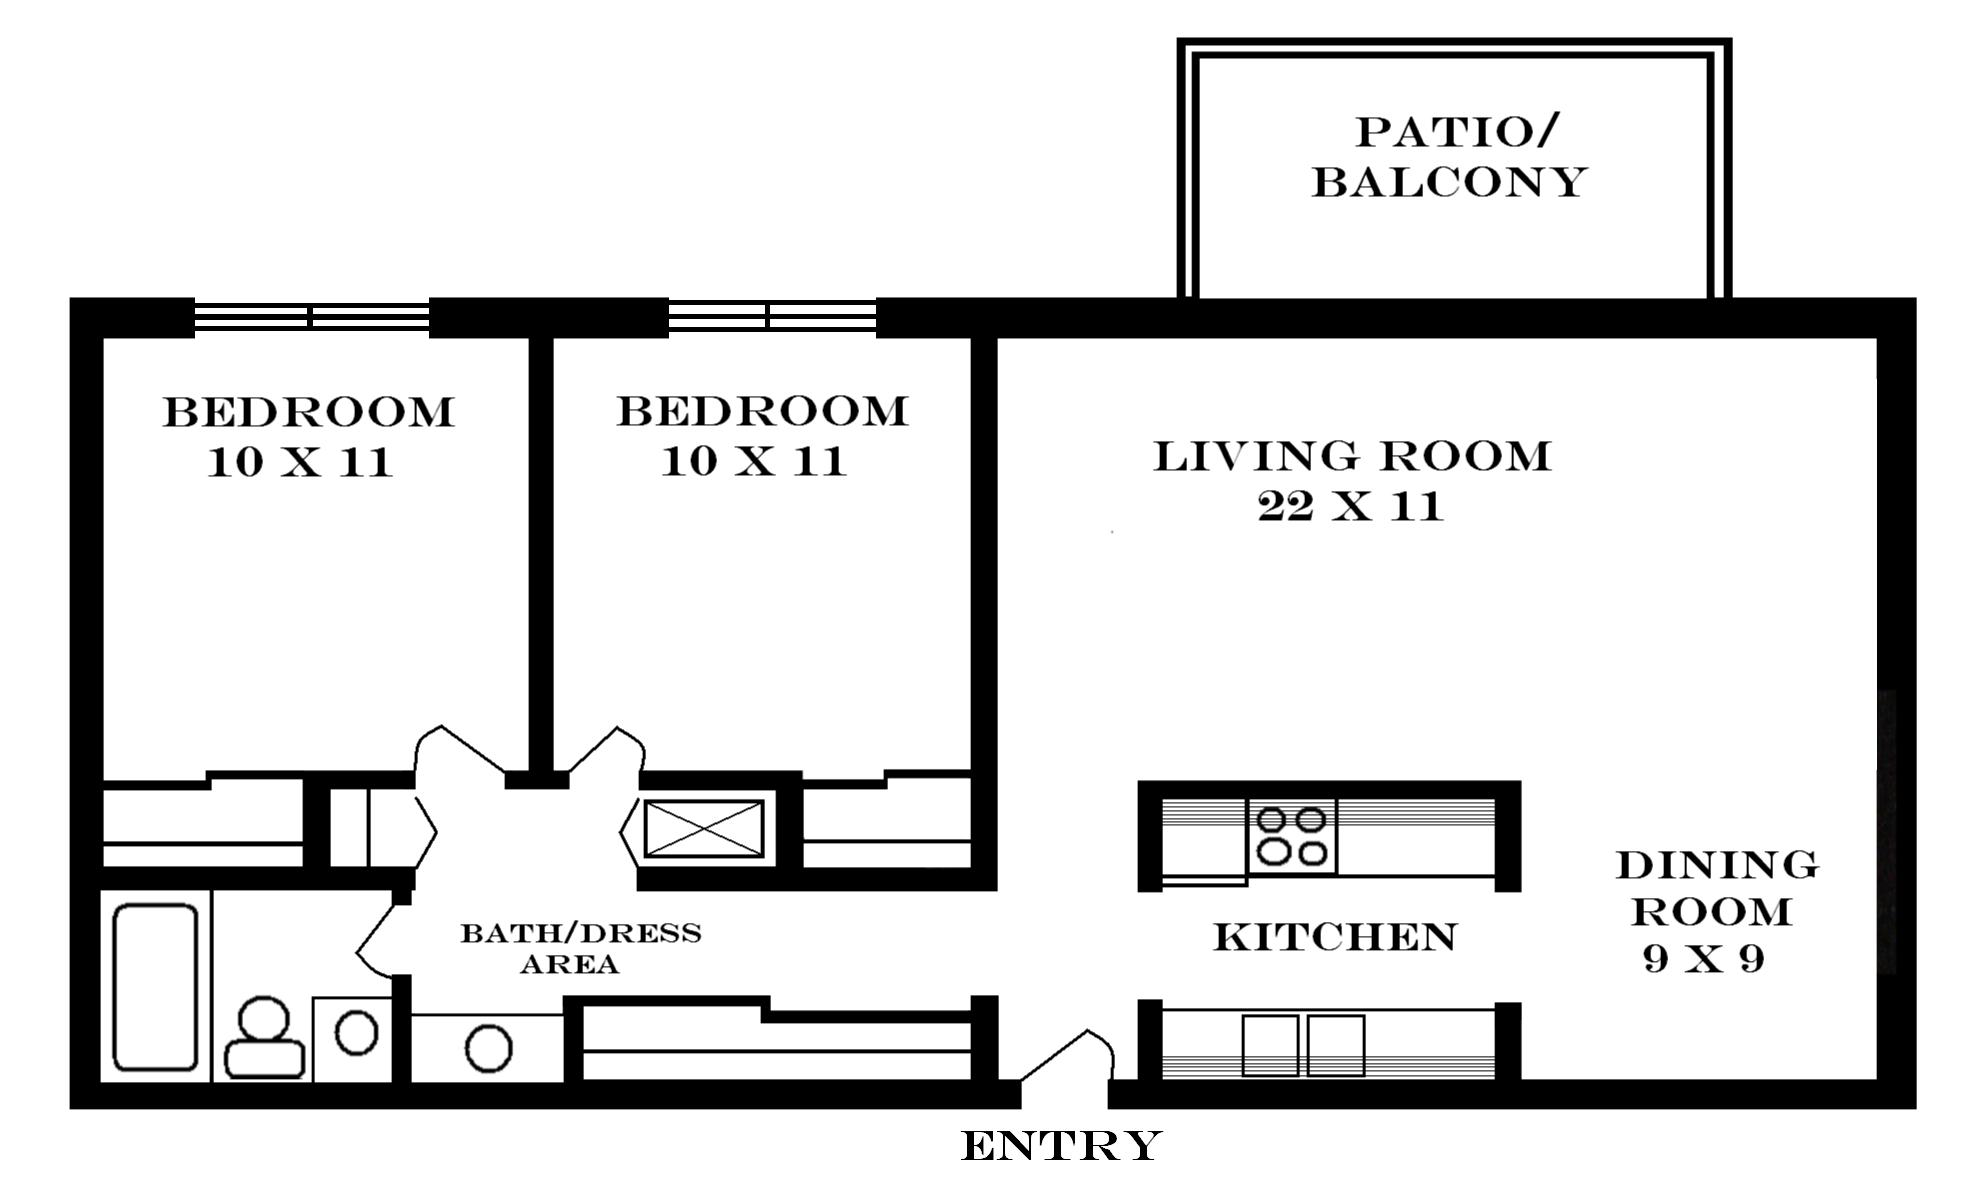 Lawrence apartments meadowbrook 2601 dover square for 2 bedroom 2 bath garage apartment plans